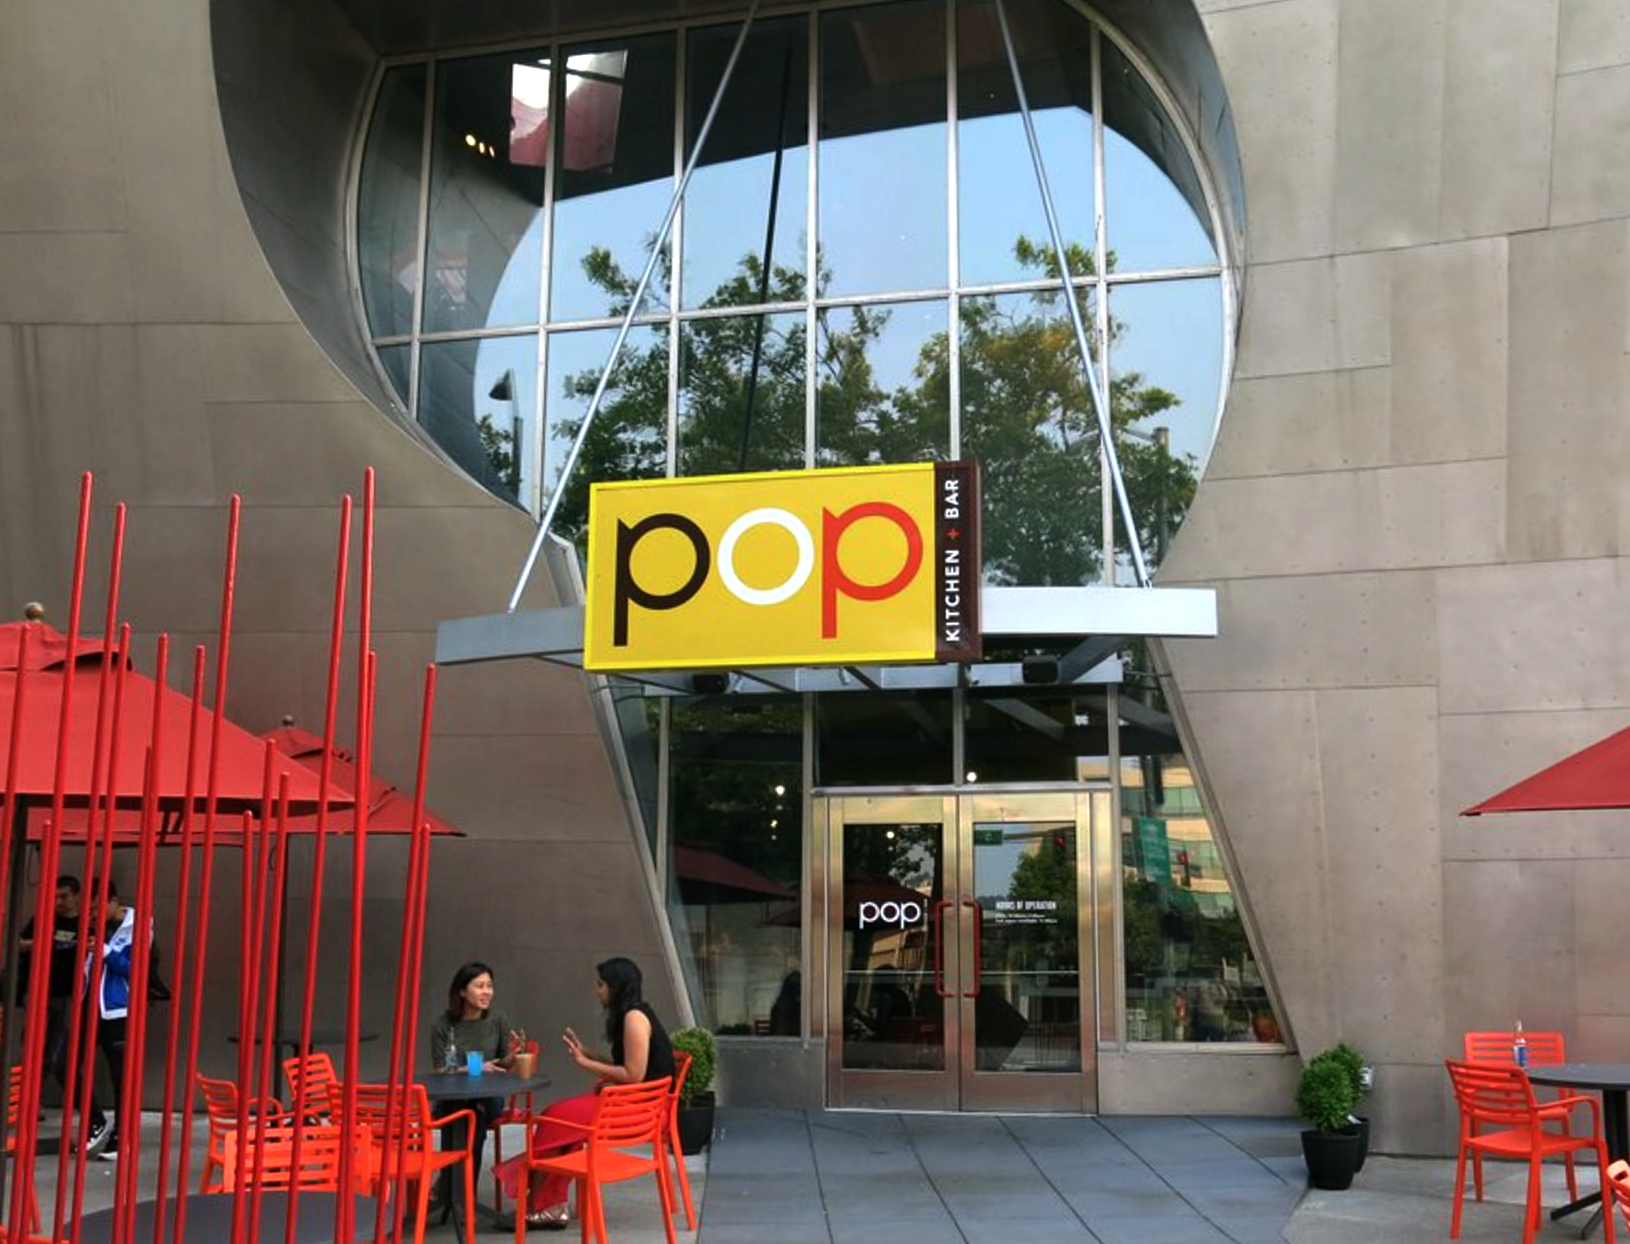 Pop Kitchen + Bar at the EMP | Brand Identity + Environmental Design Consulting